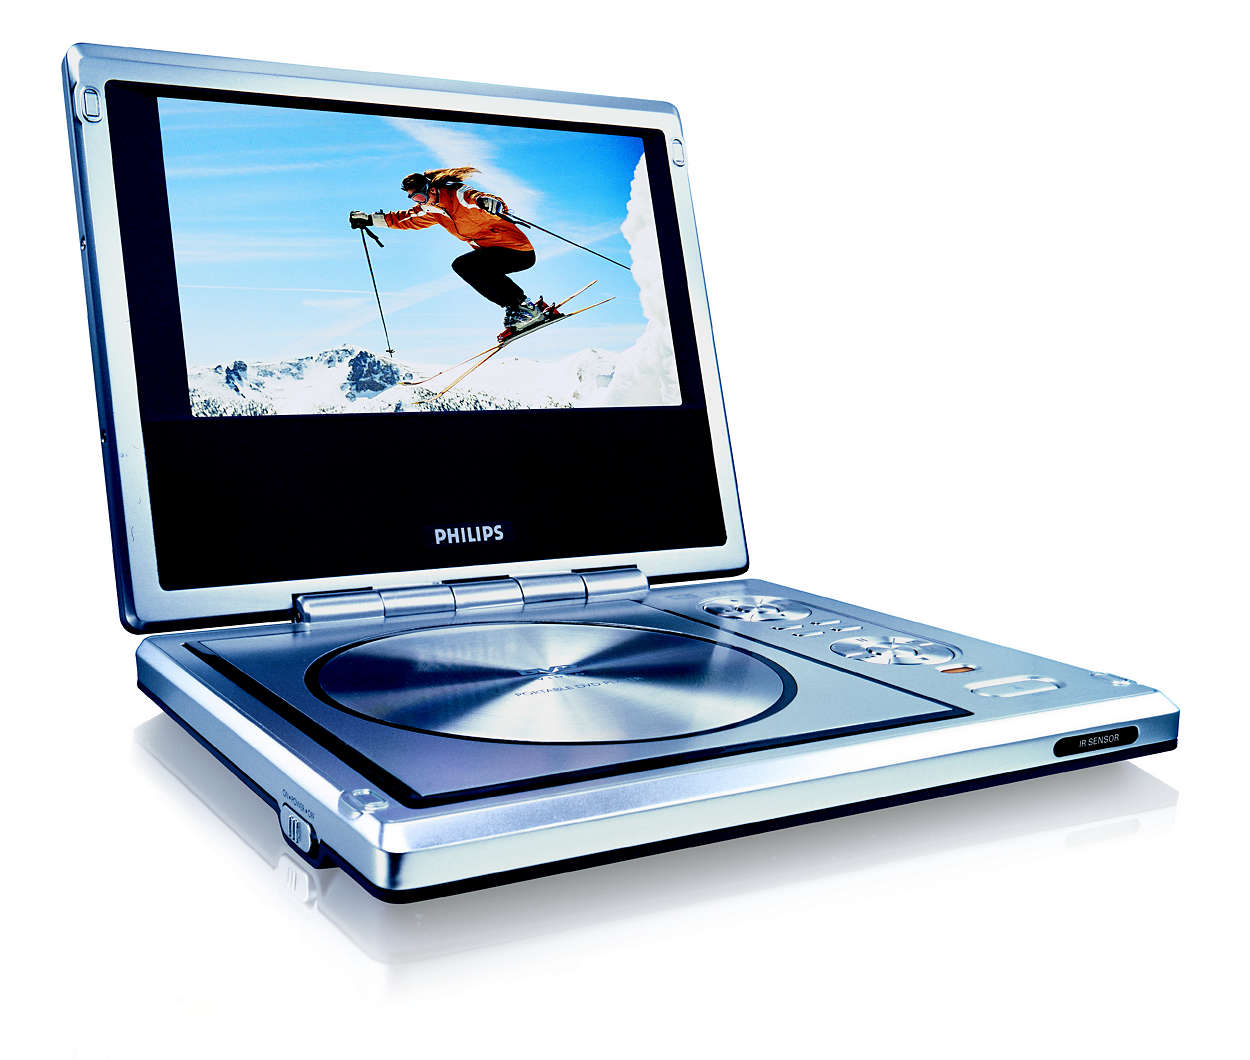 portable dvd player pet710 05 philips. Black Bedroom Furniture Sets. Home Design Ideas